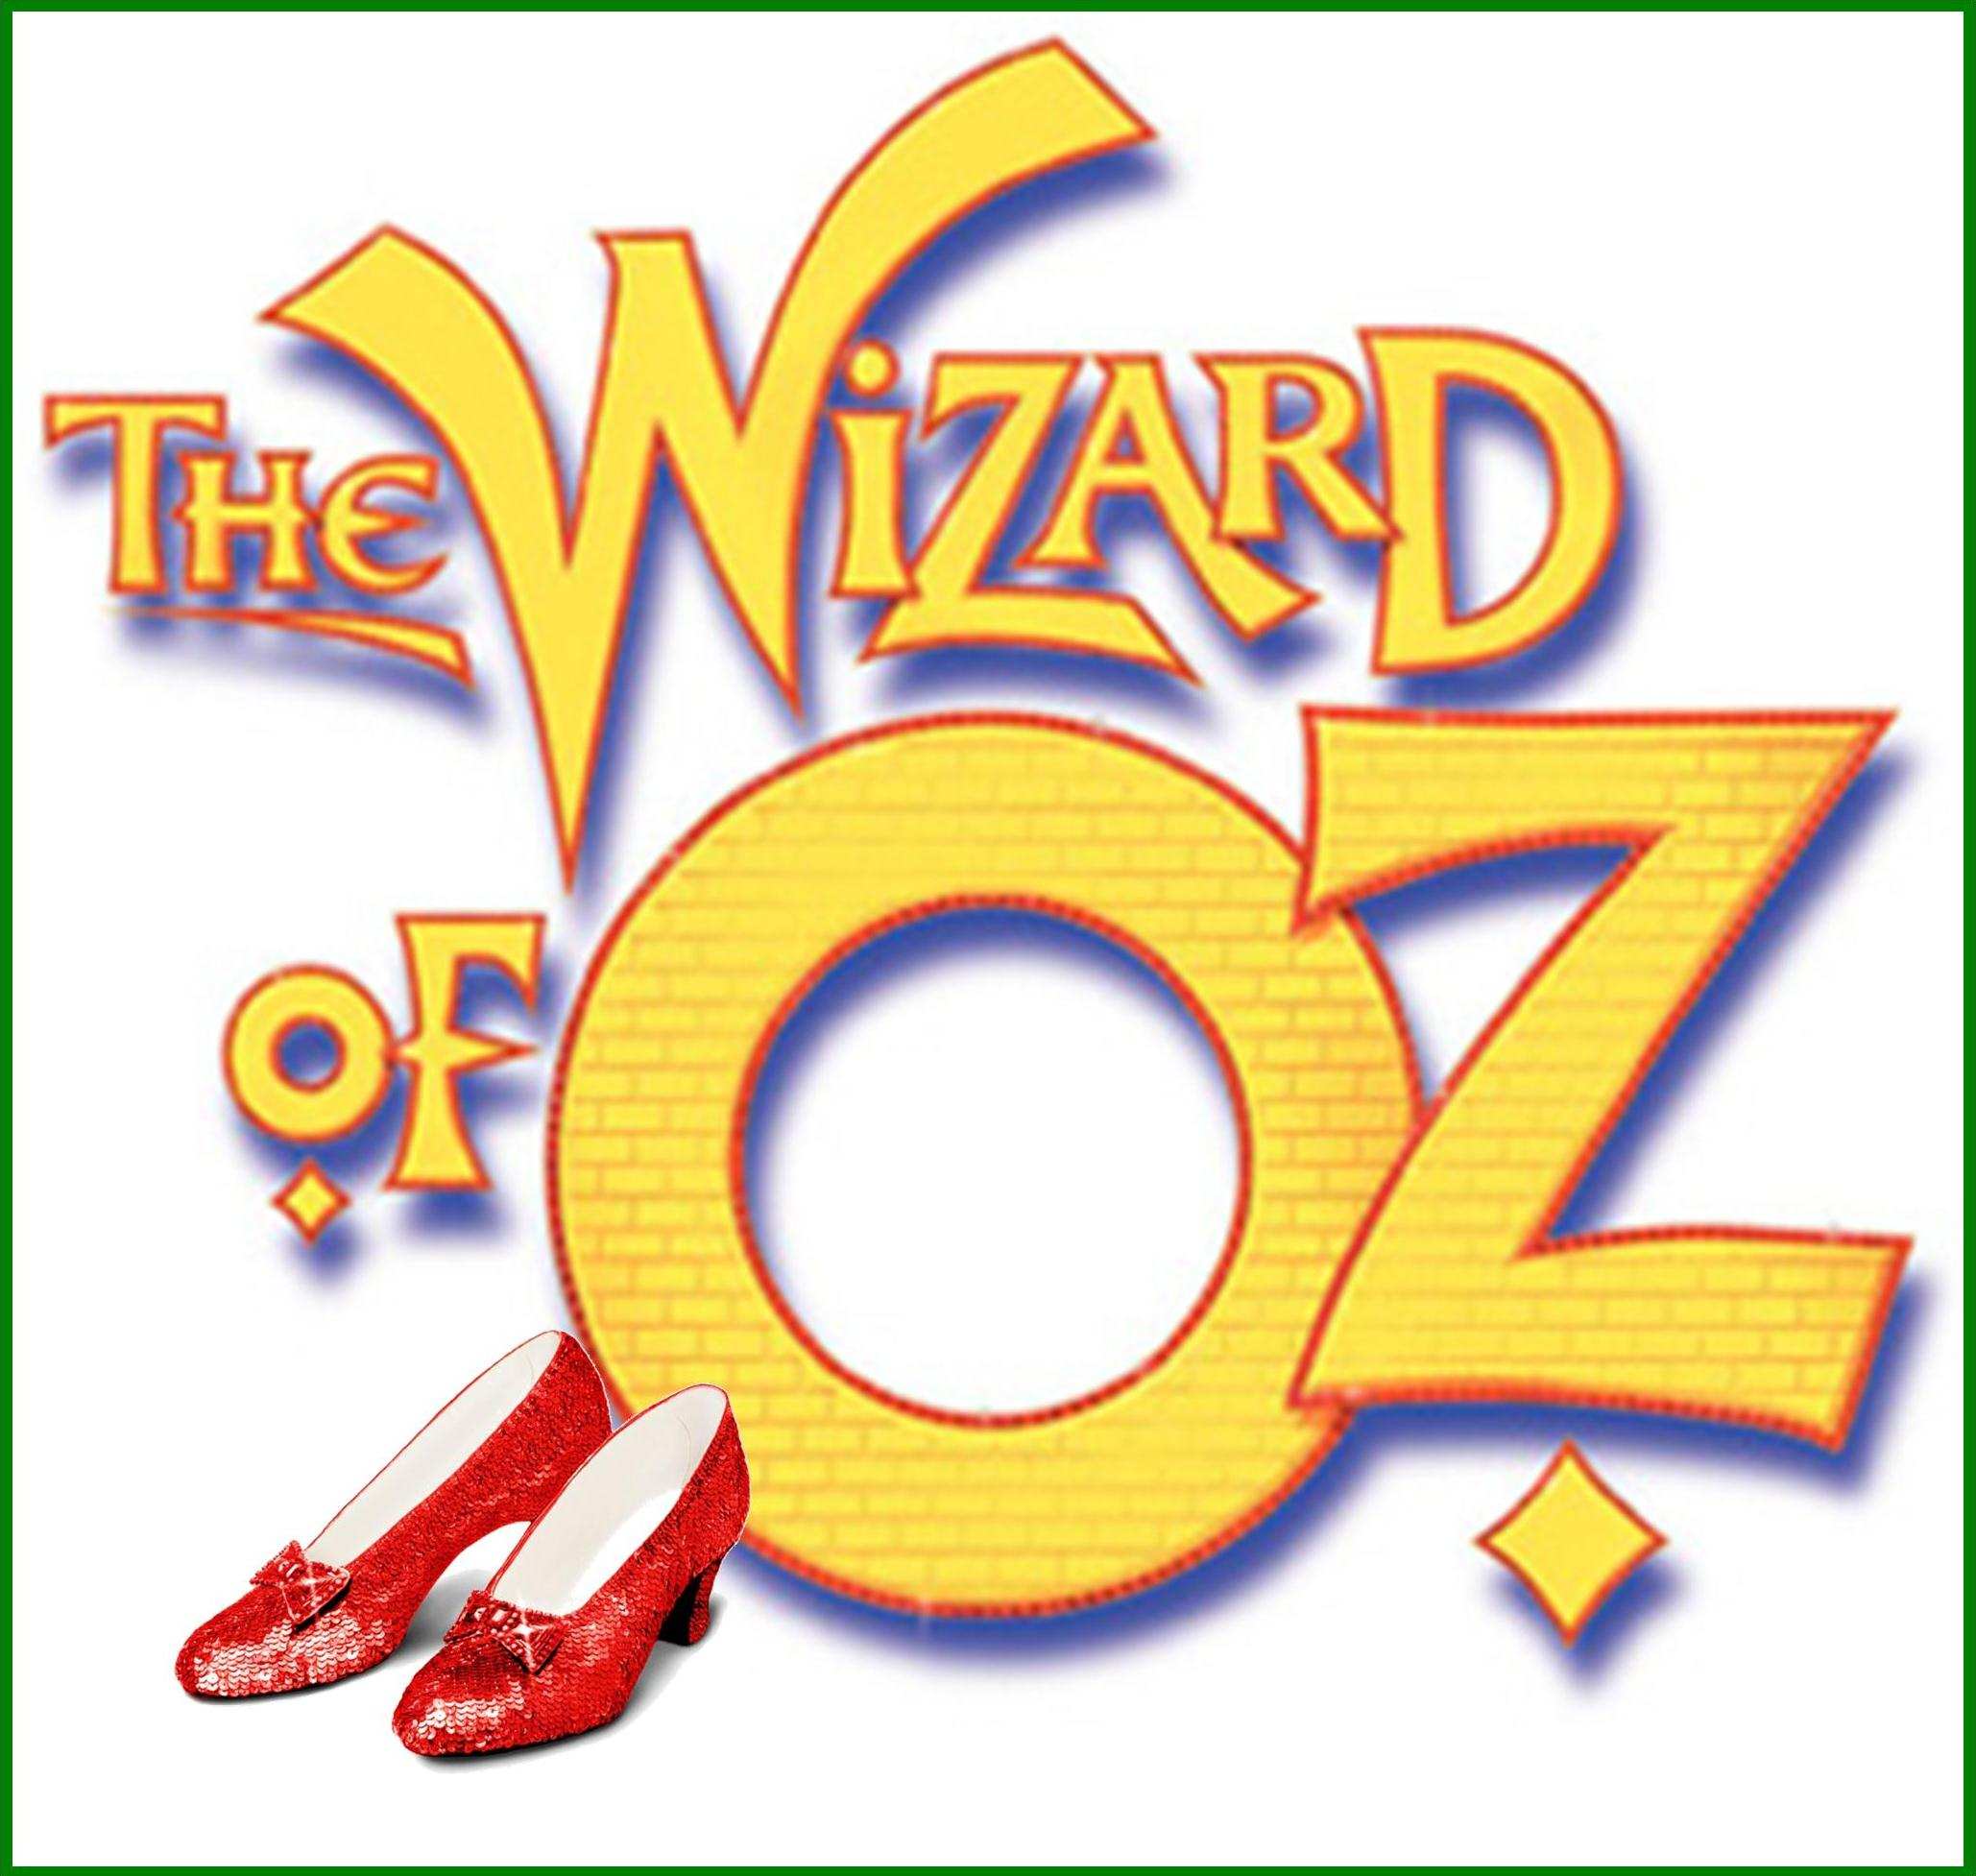 Wizard Of Oz clipart movie Of Theater Oz Presents: Christian